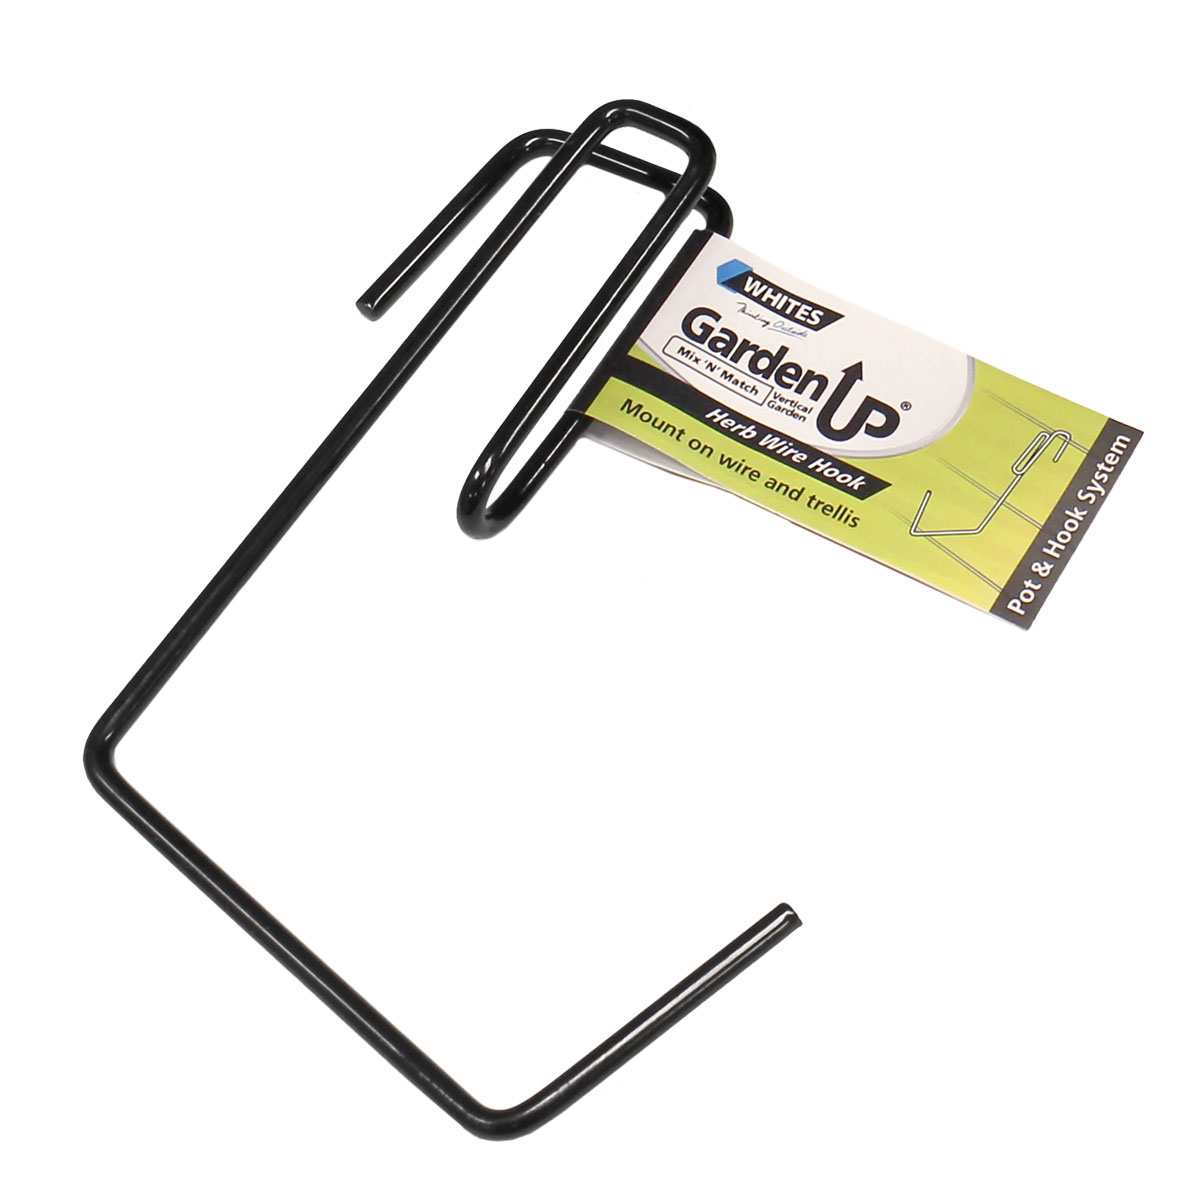 18099 Garden Up Herb Wire Hook